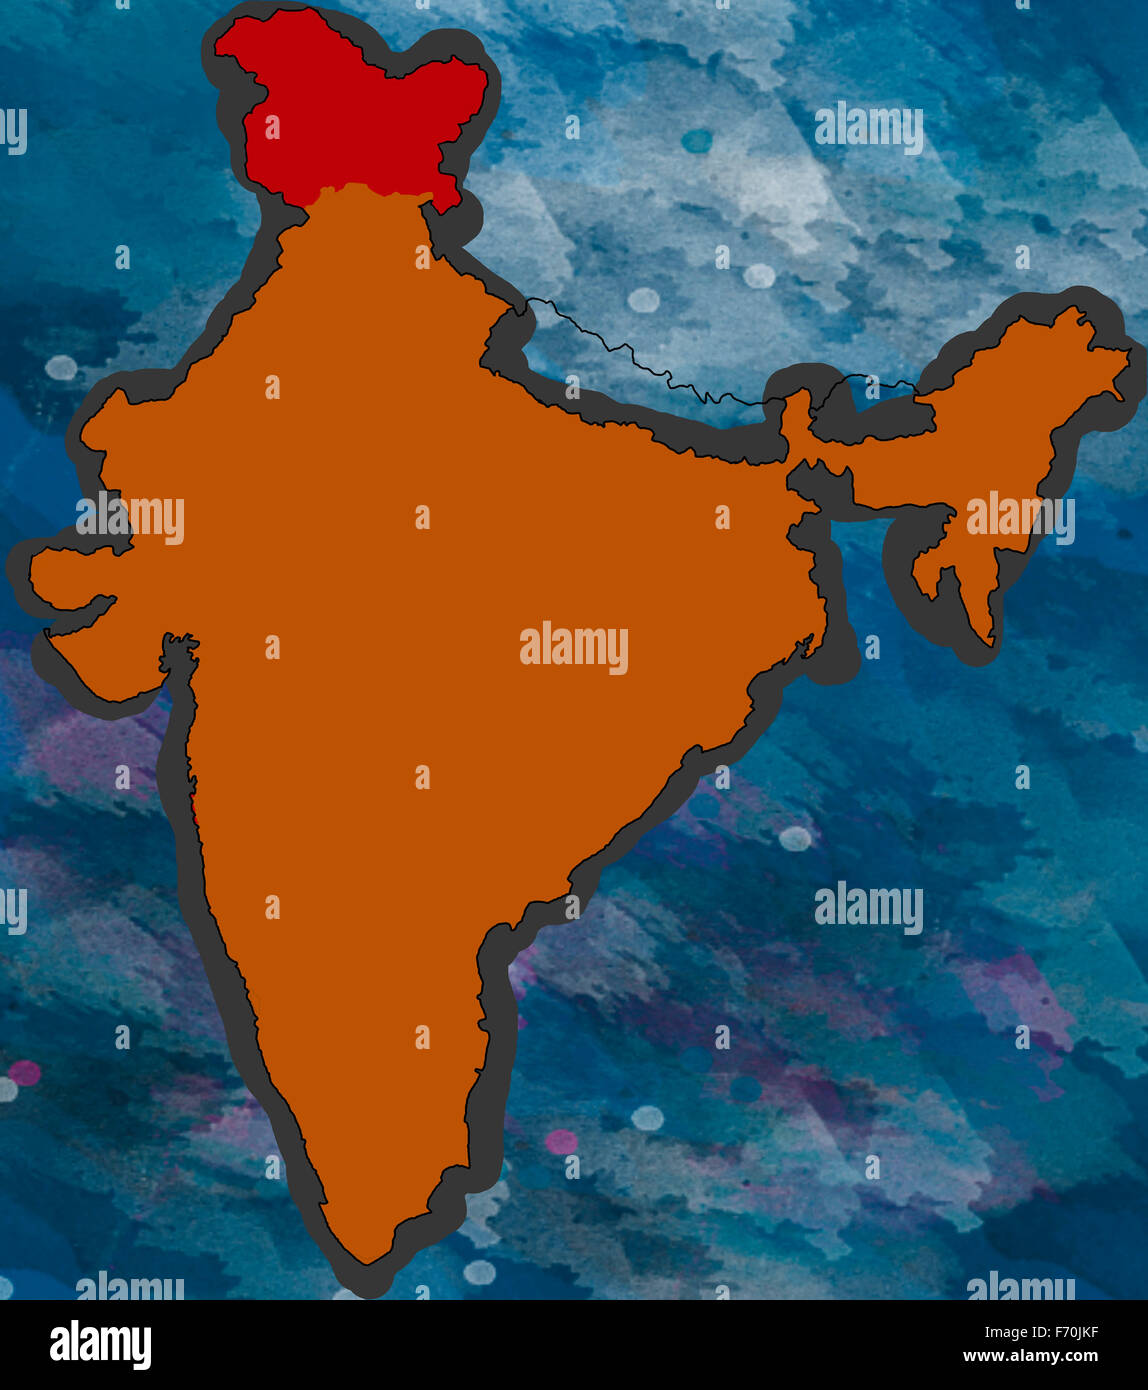 Illustration, jammu & kashmir location map, india, asia Stock Photo ...